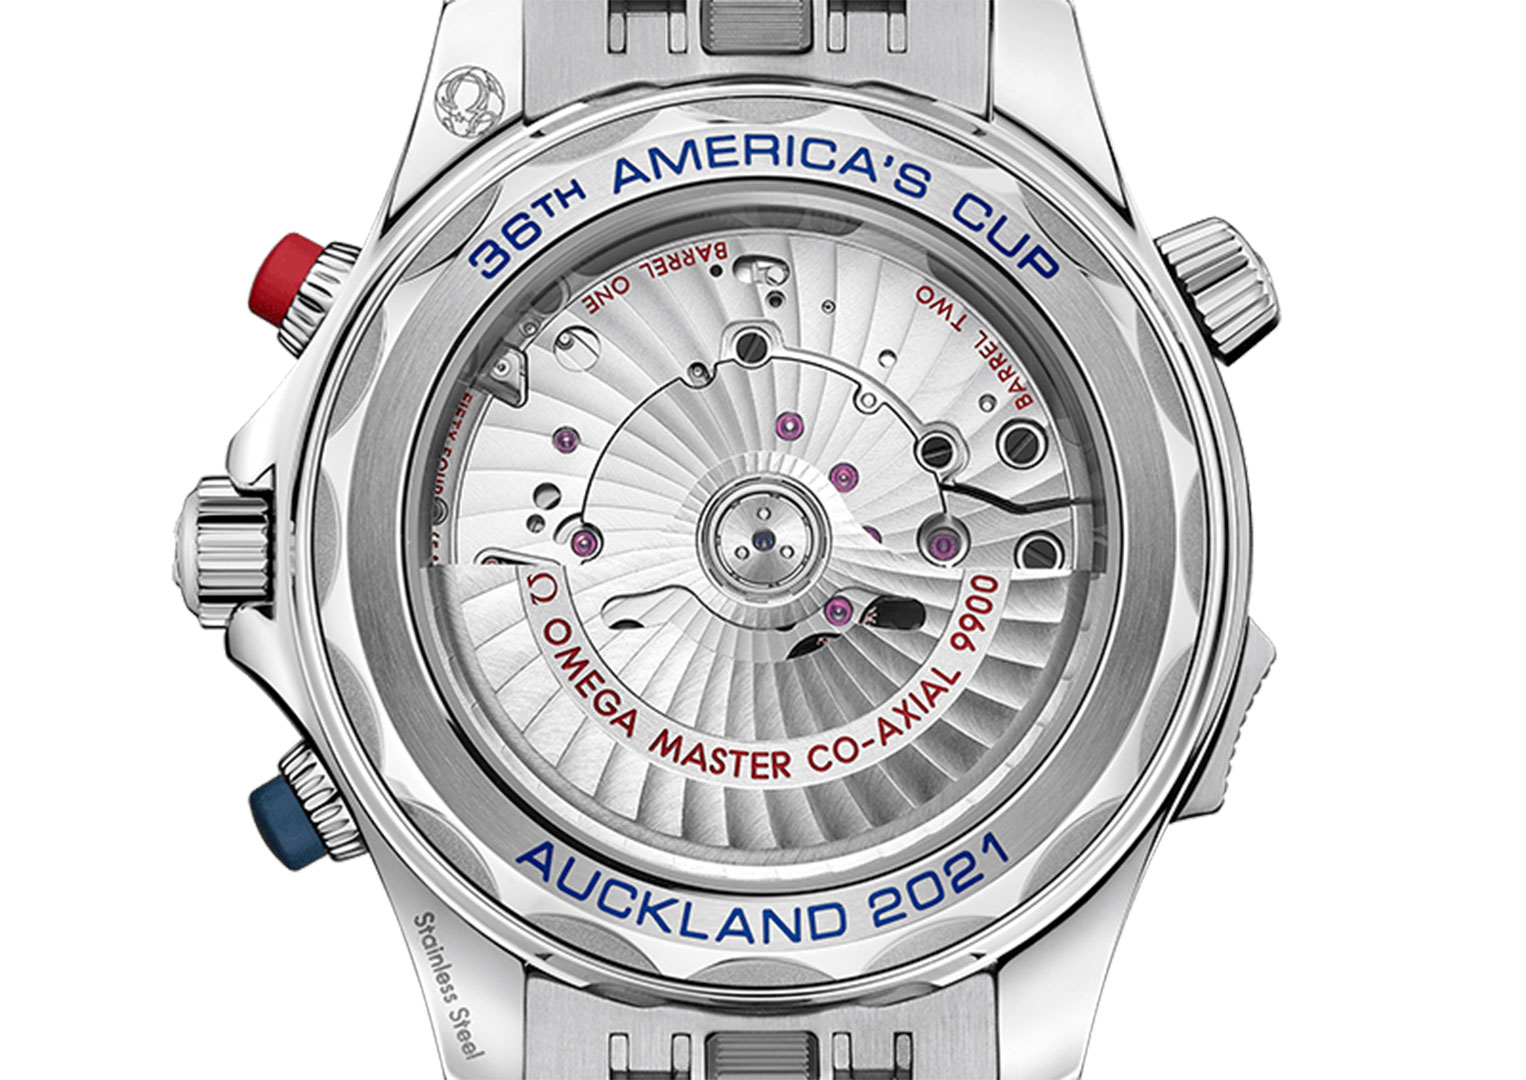 The Omega Seamaster Diver 300M America's Cup Chronograph retails at £8,800)